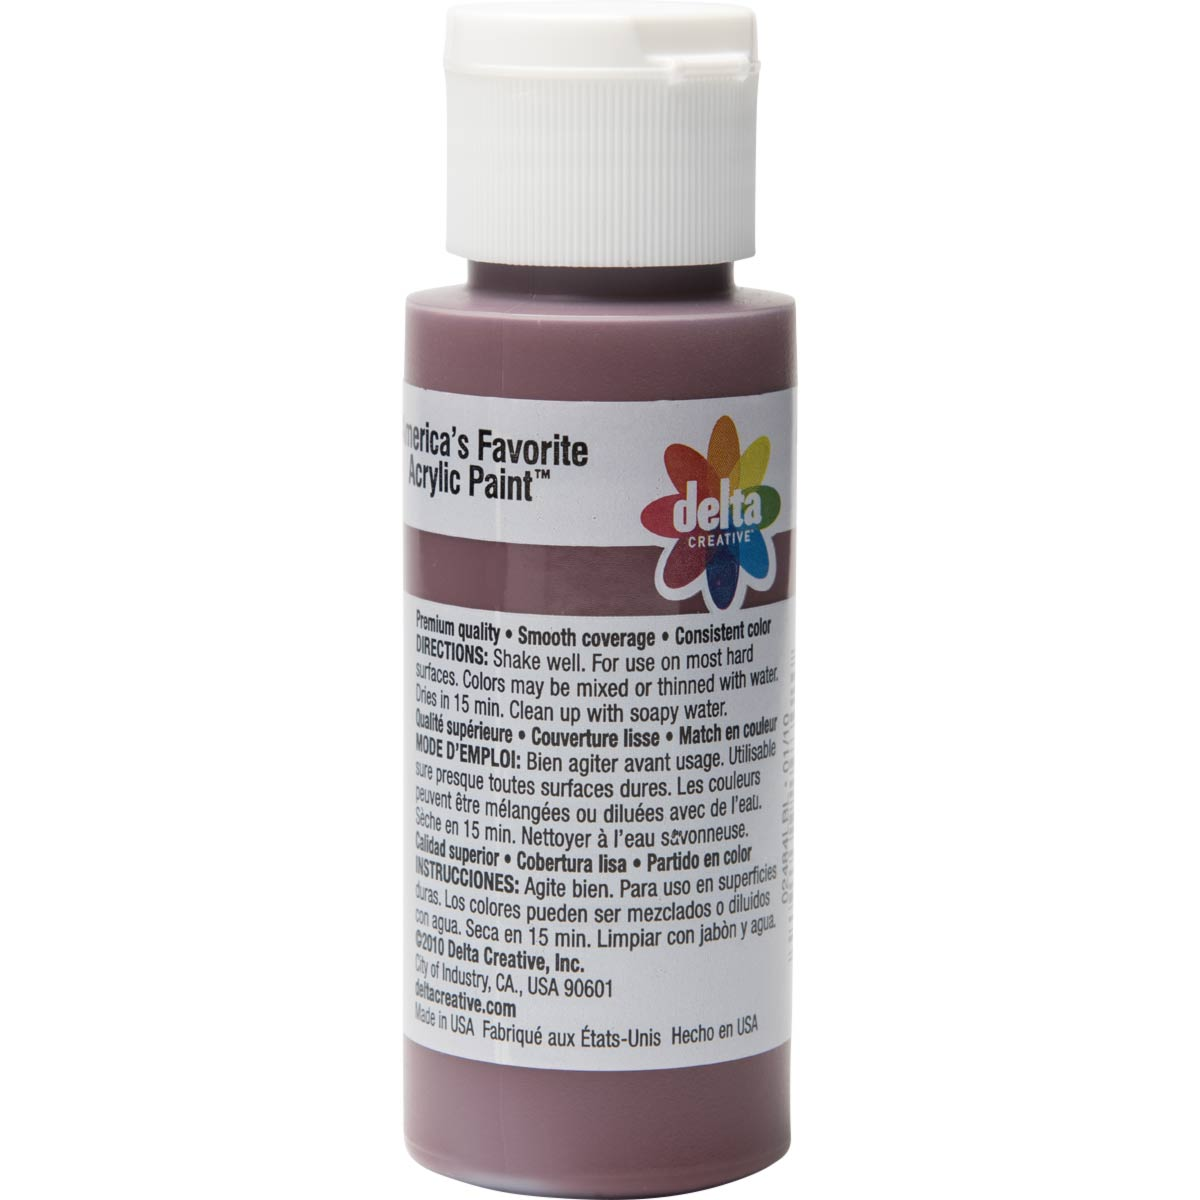 Delta Ceramcoat ® Acrylic Paint - Black Cherry, 2 oz. - 024840202W